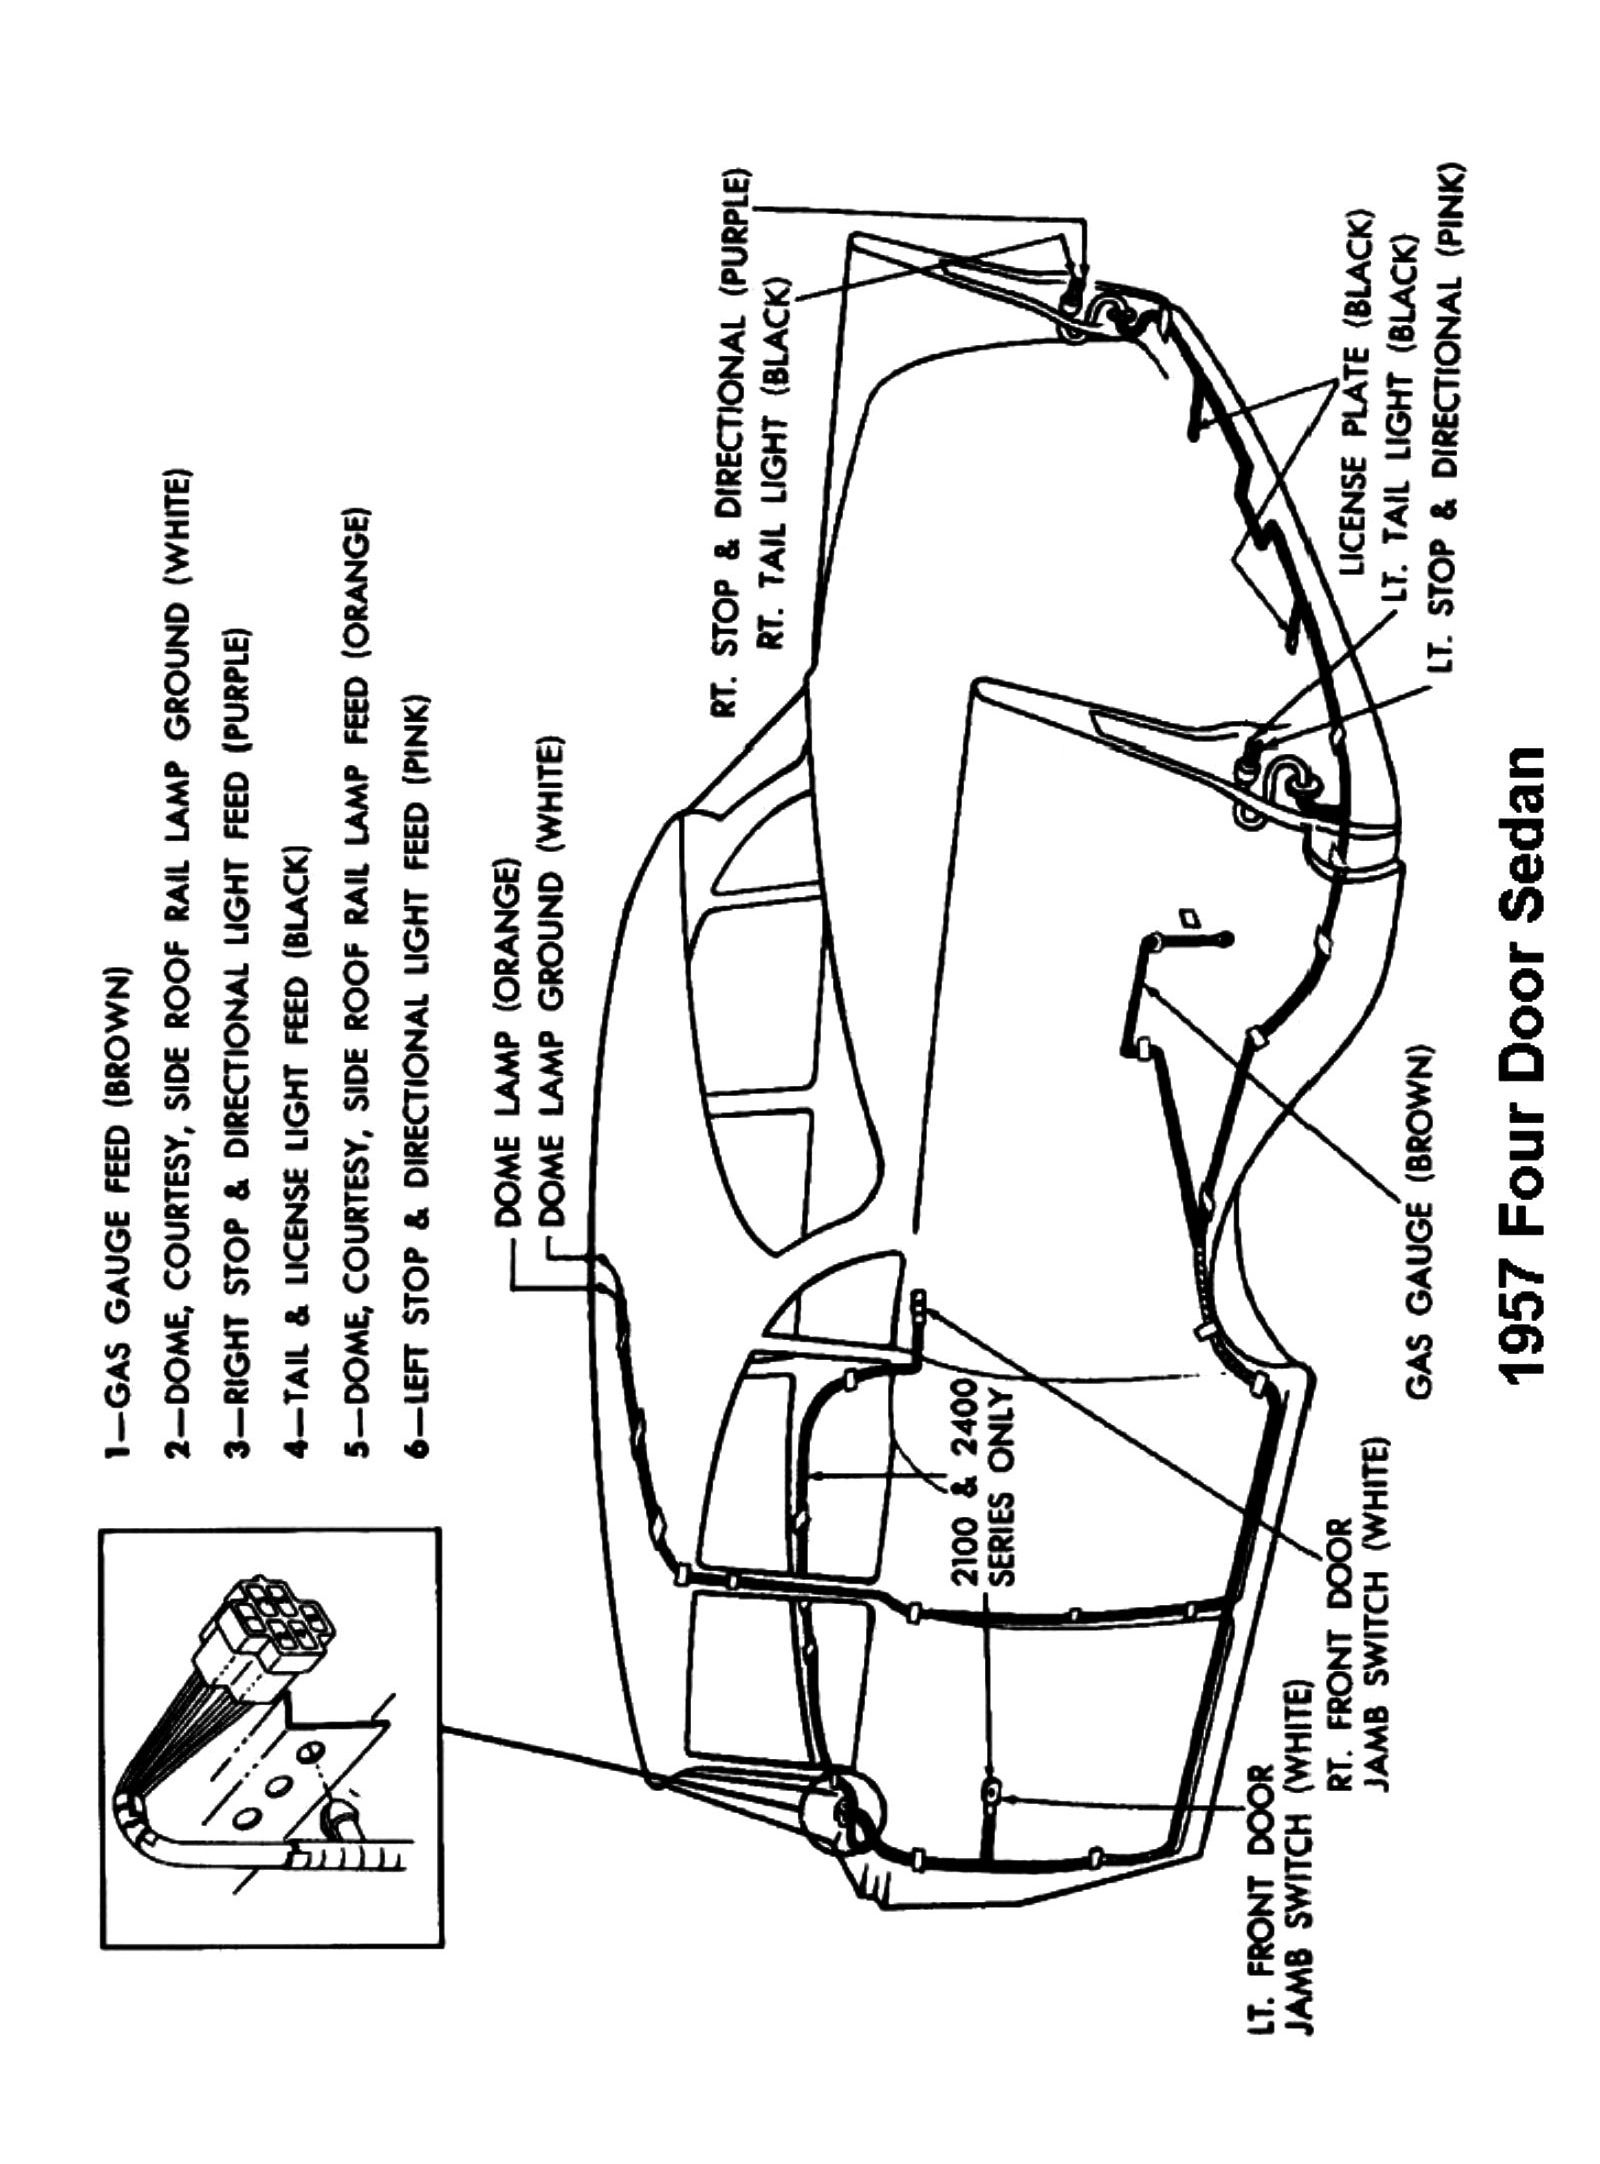 wiring harness for 57 chevy